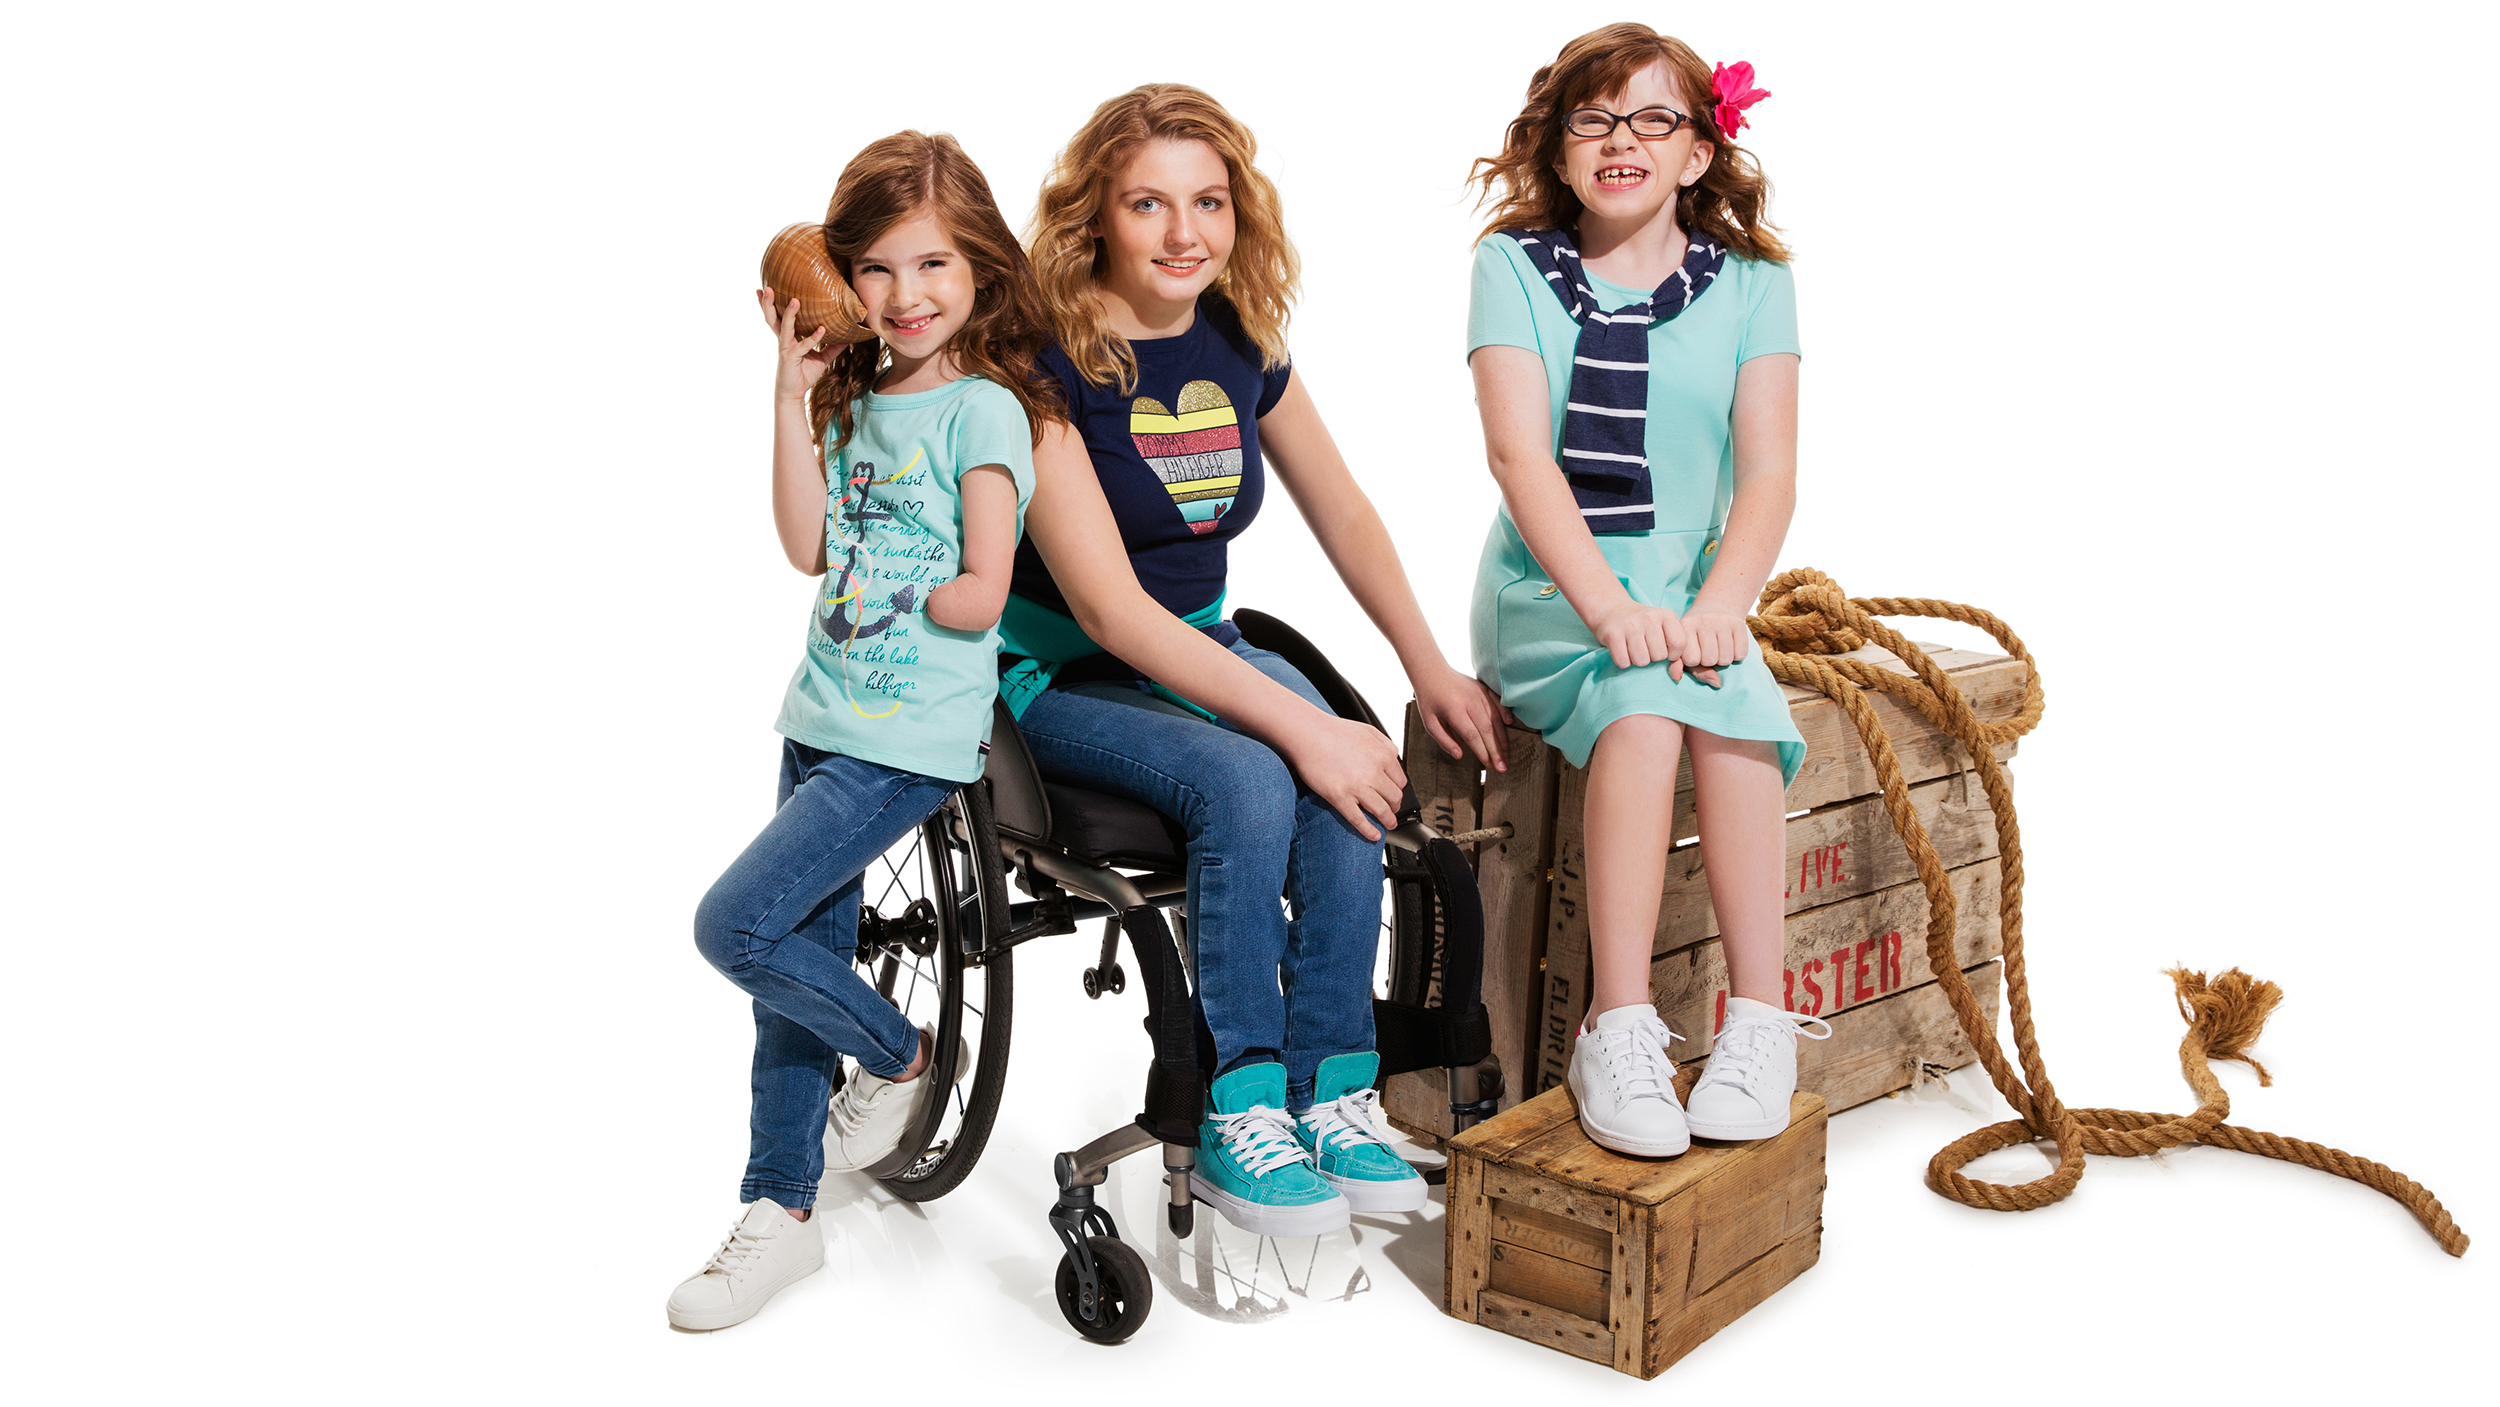 Tommy Hilfiger launches 'inclusive' clothing line for kids ...